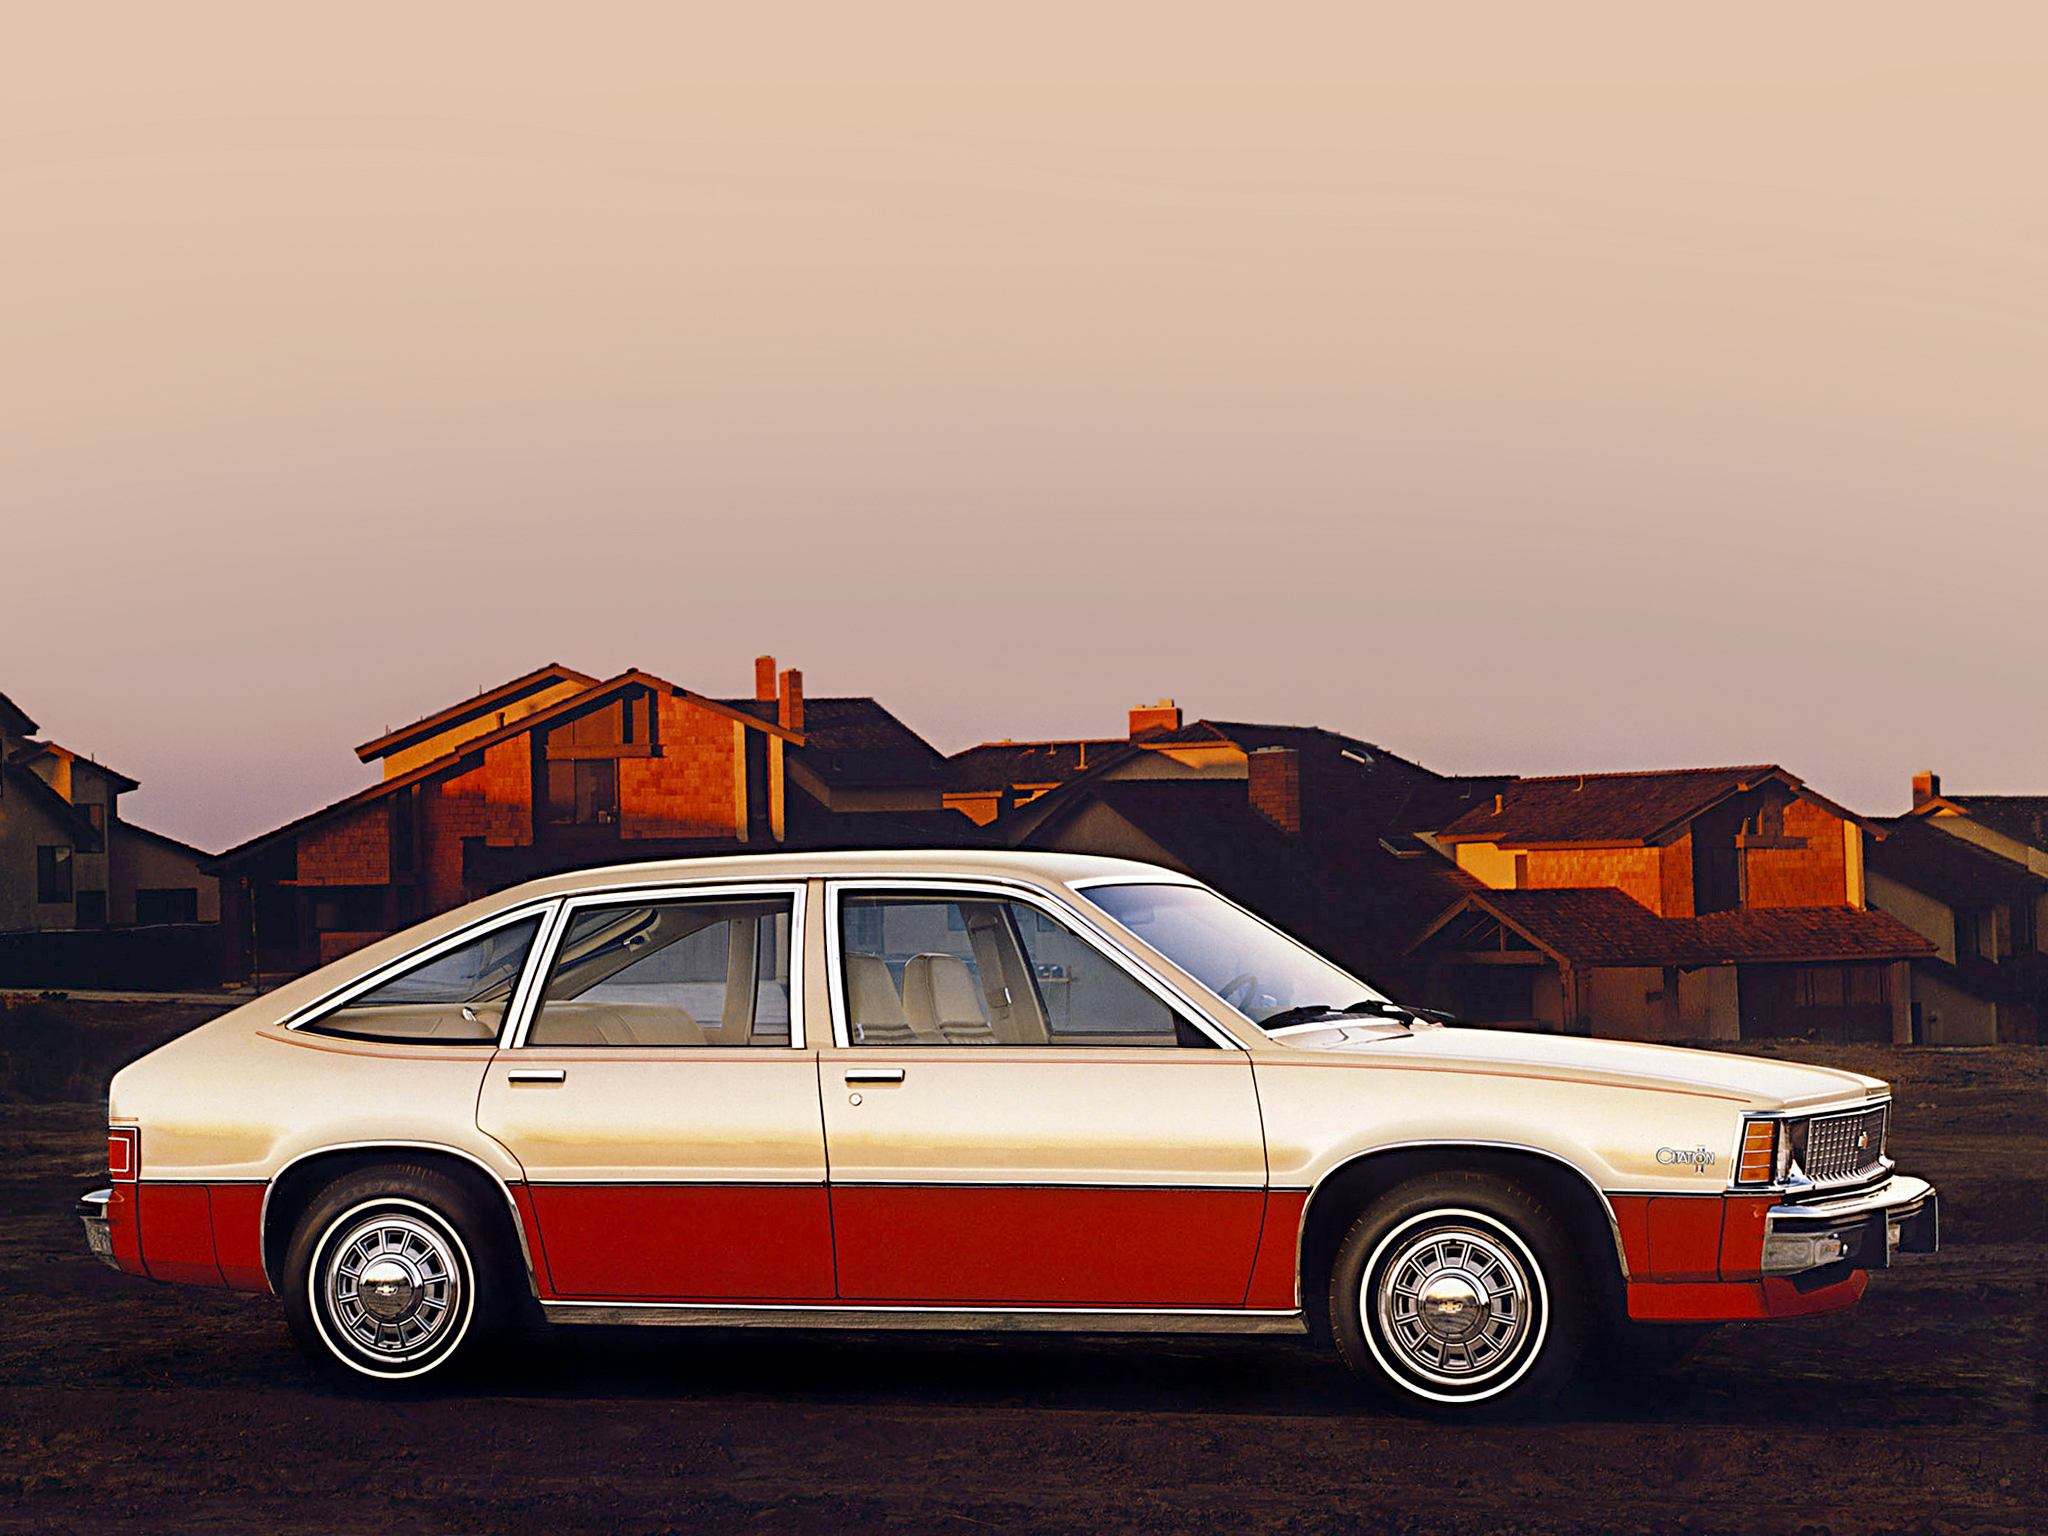 Chevrolet Citation #22